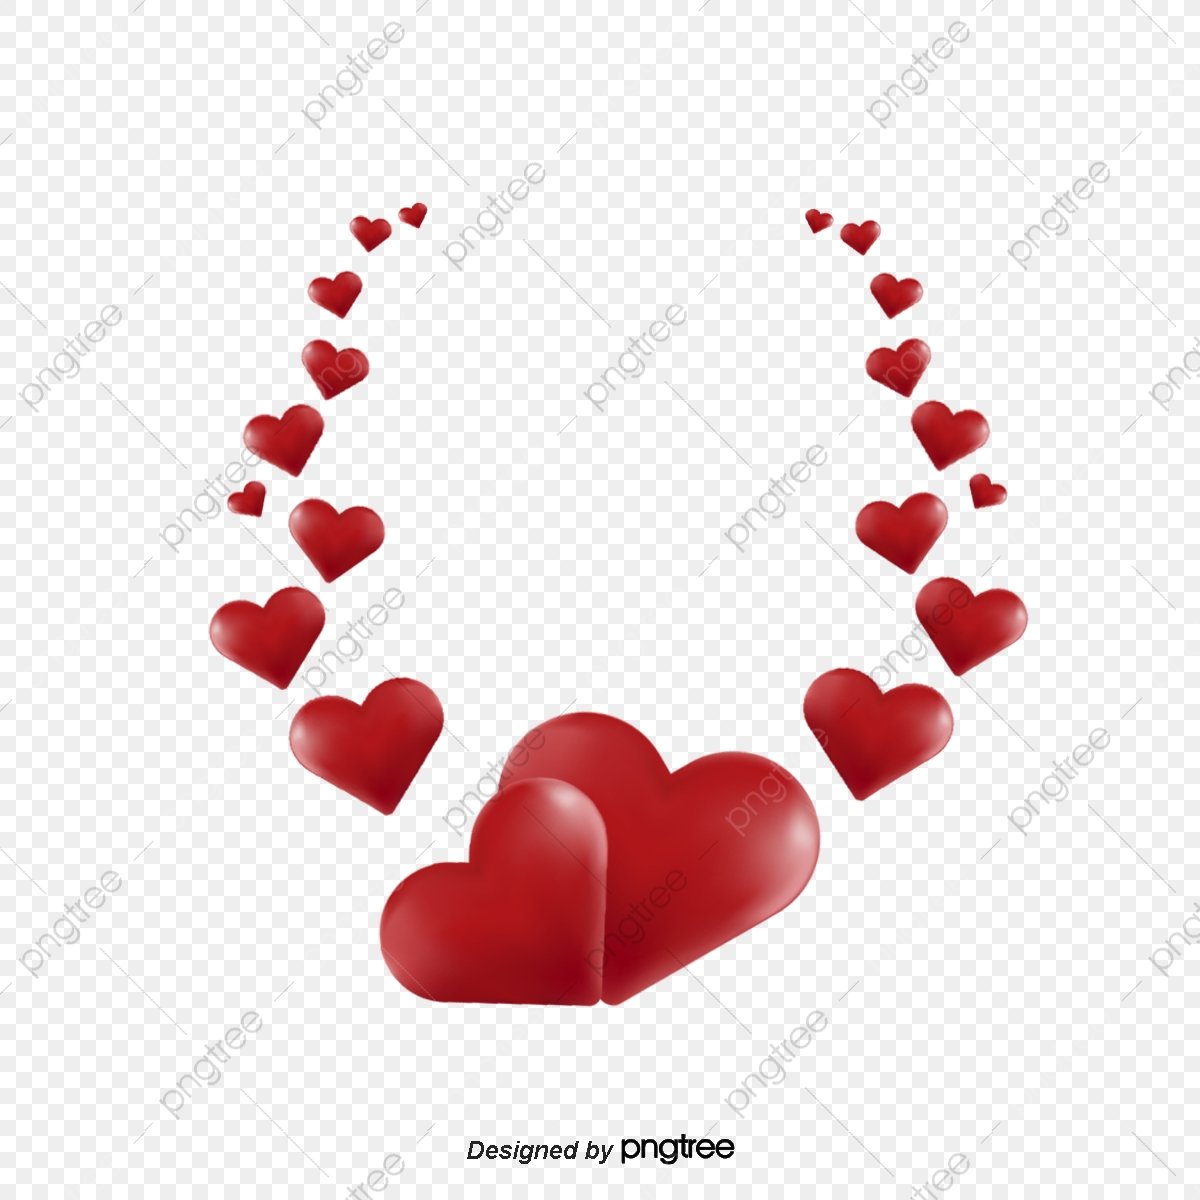 Heart, Heart Clipart, Heart Crown PNG Transparent Image and Clipart